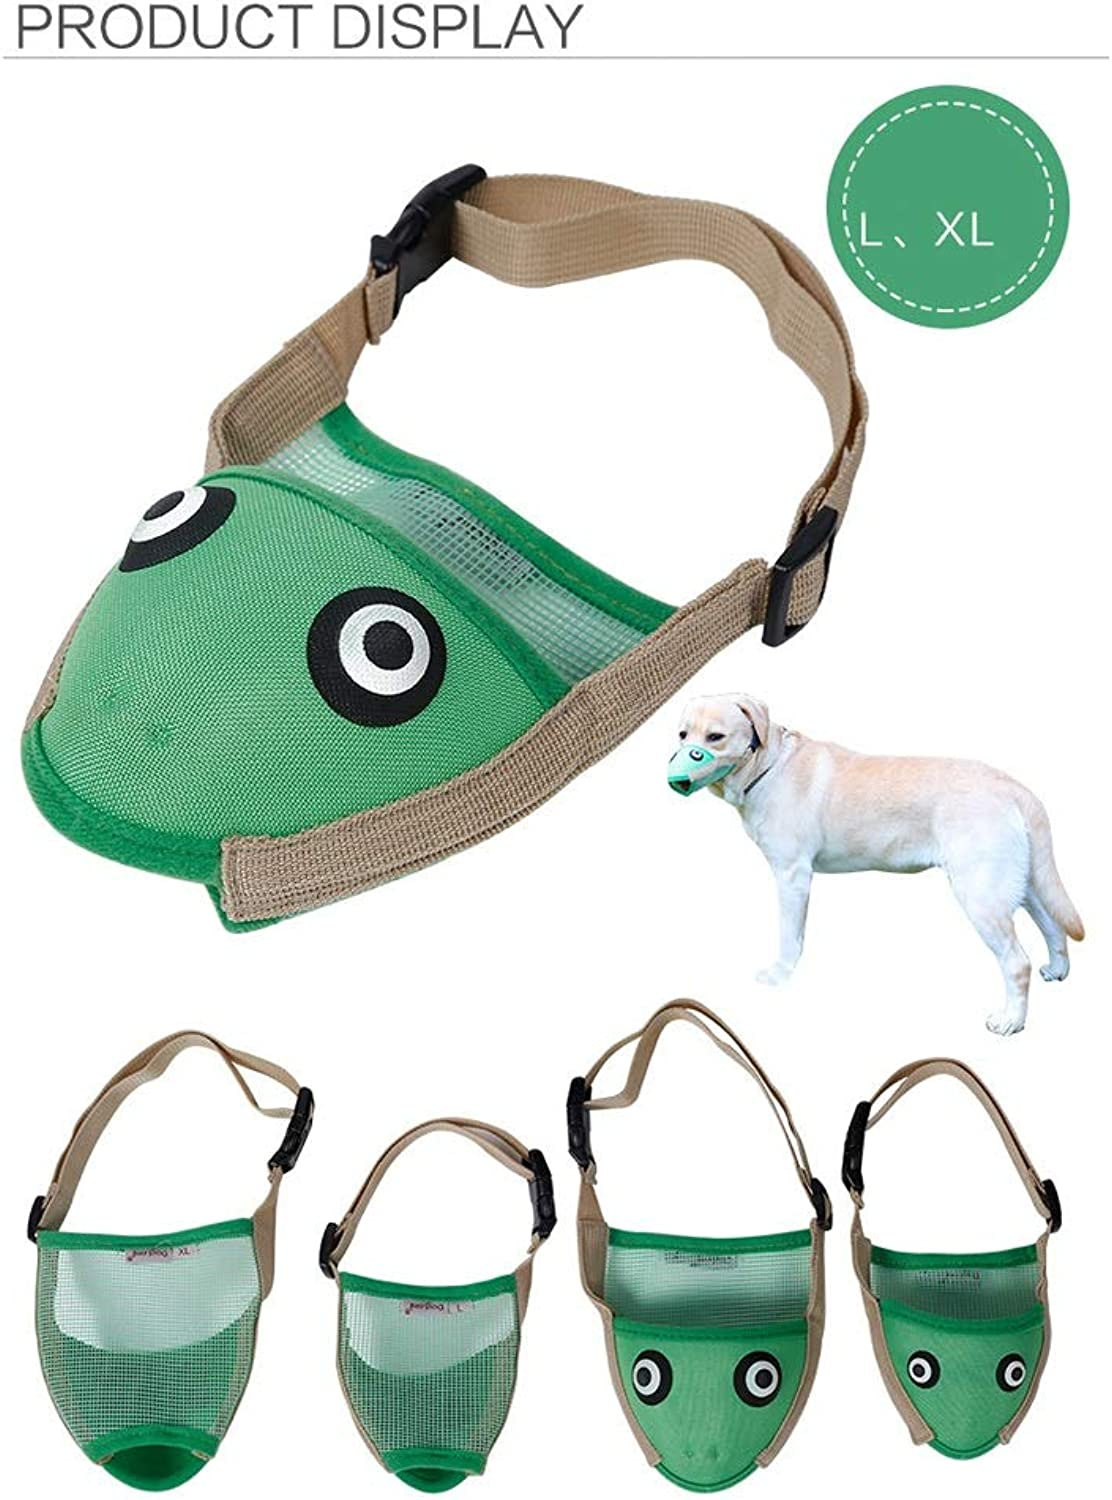 DENTRUN 2 Pack Dog Mouth Covers,Bird Frog Shape Puppy AntiCalled Muzzle Masks Pet Mouth Set Prevent from Biting,Barking and Chewing,Breathable Adjustable Soft Oxford Fabric